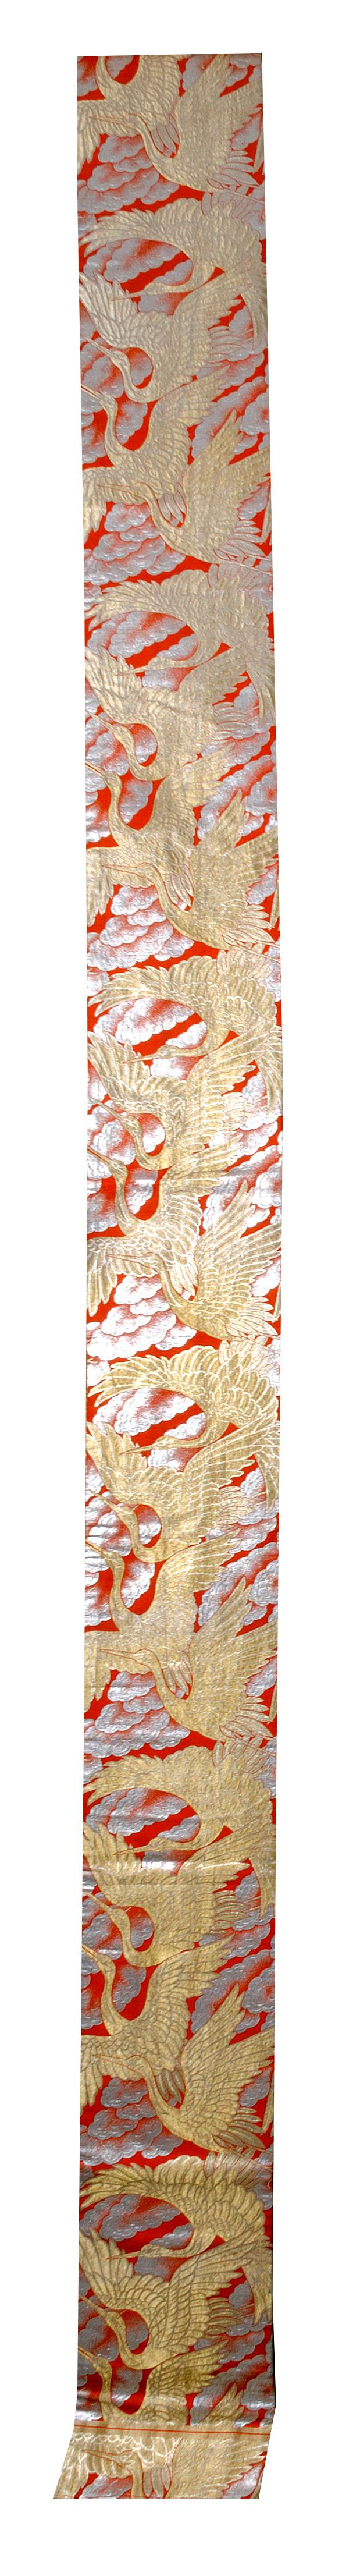 SILK BROCADE OBI In design of golden cranes on a silver and orange cloud-filled sky.